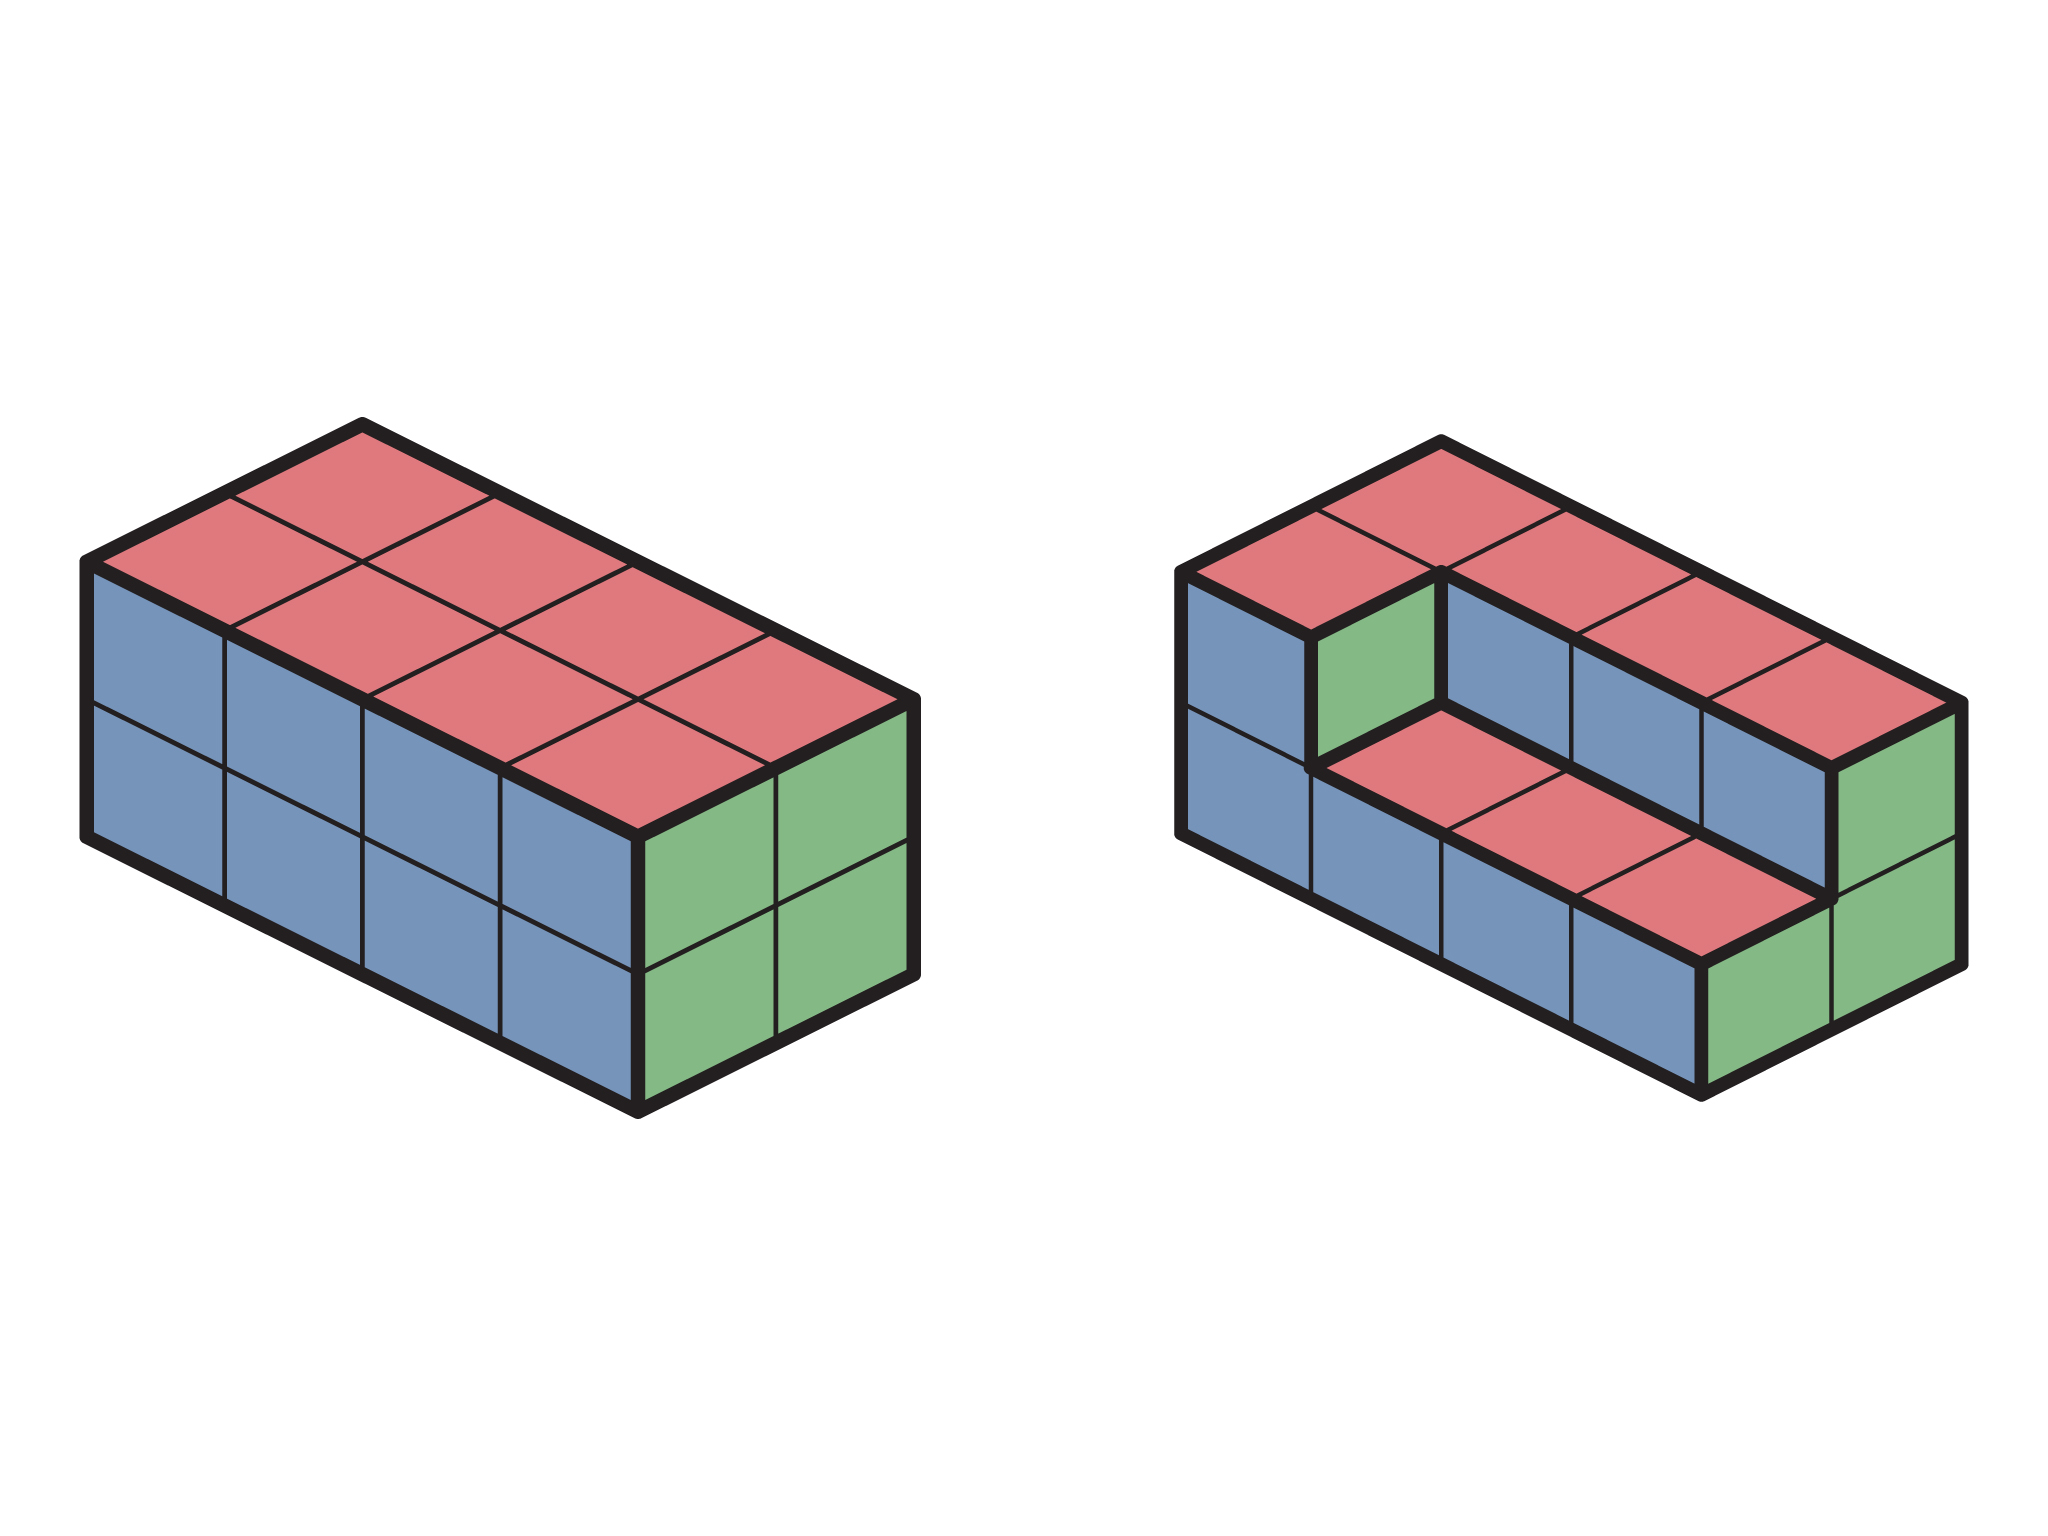 Students Should See That The Key Is Keeping The 2d Views The Same The  Larger A Volume They Start With, The More Cubes Can Be Removed